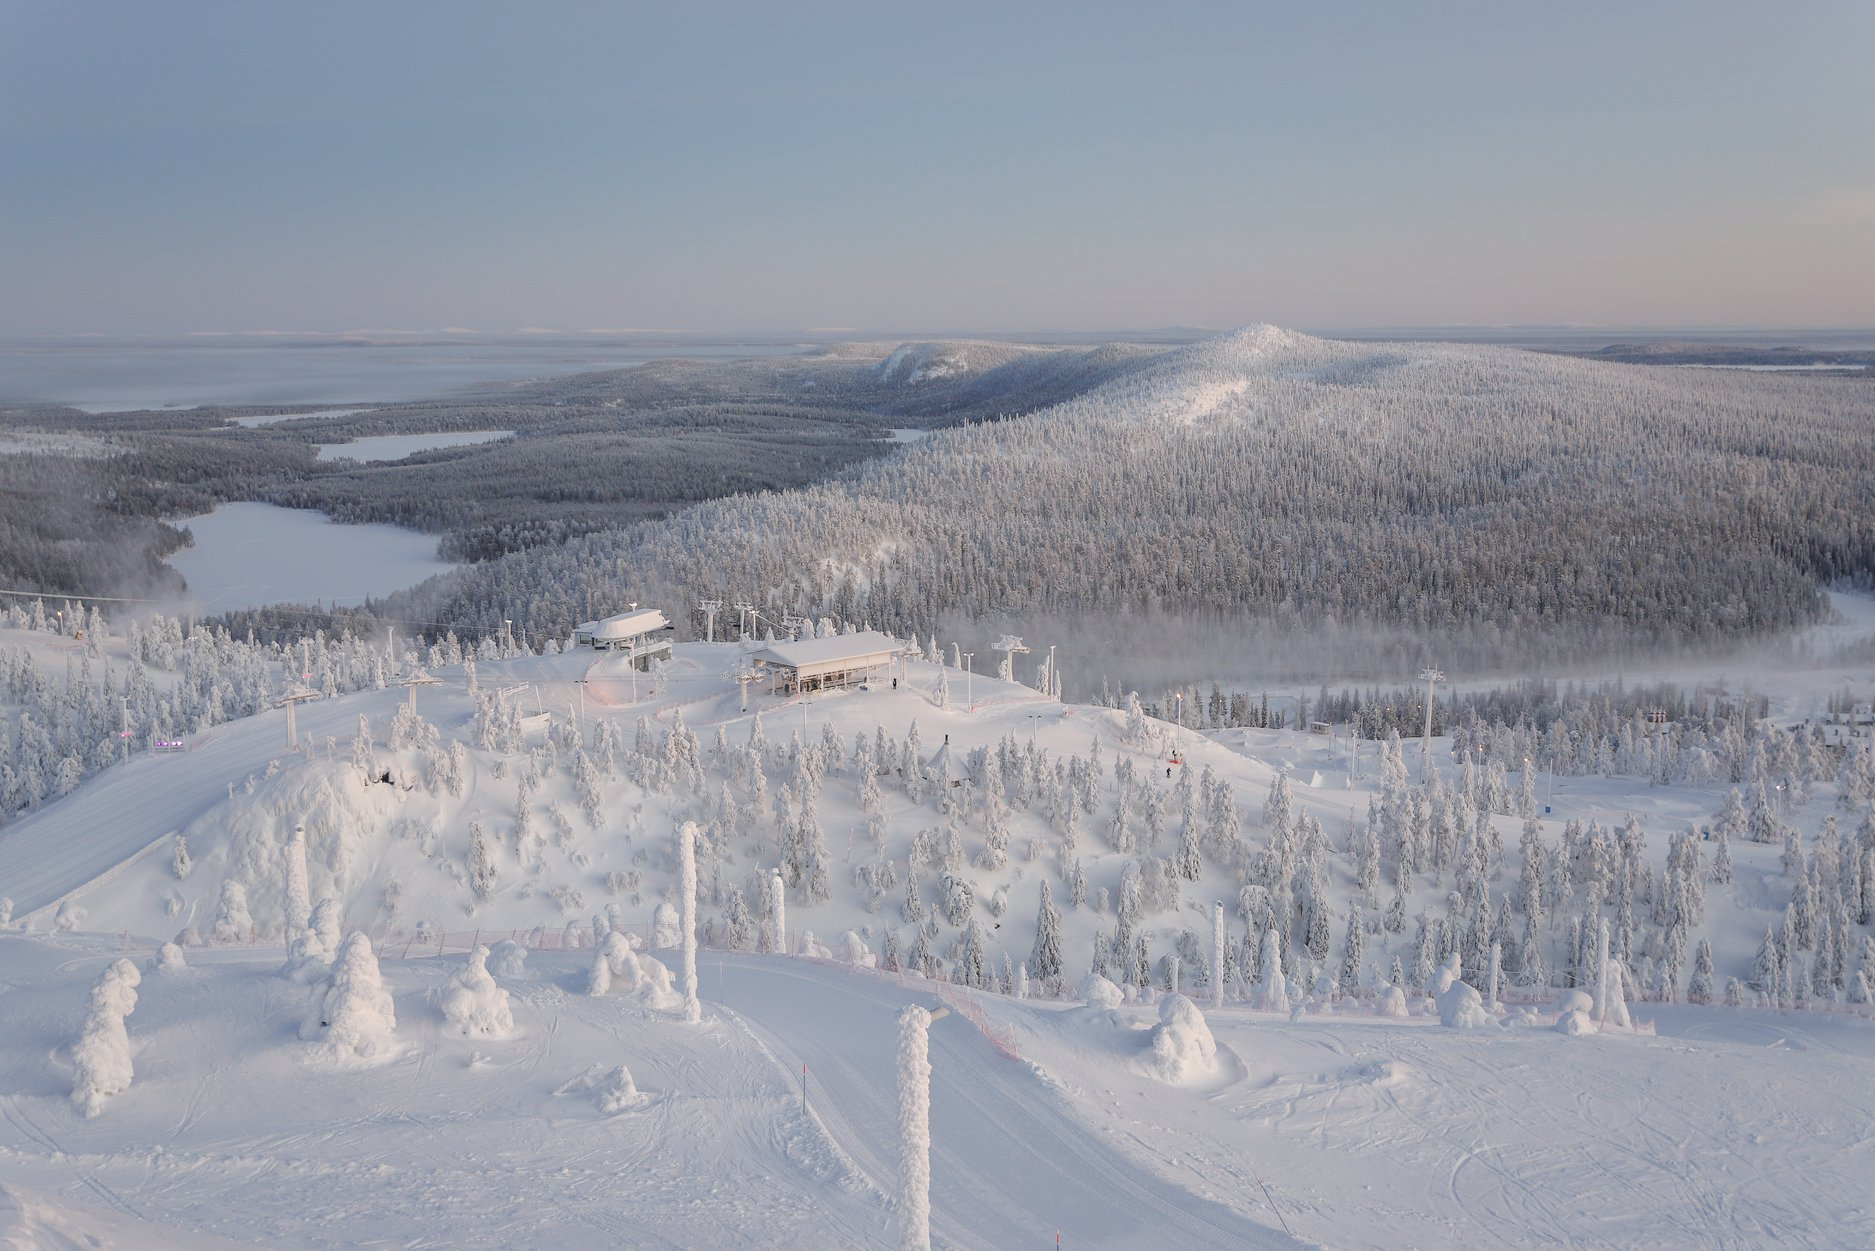 another 15 weeks left in the season, Ruka